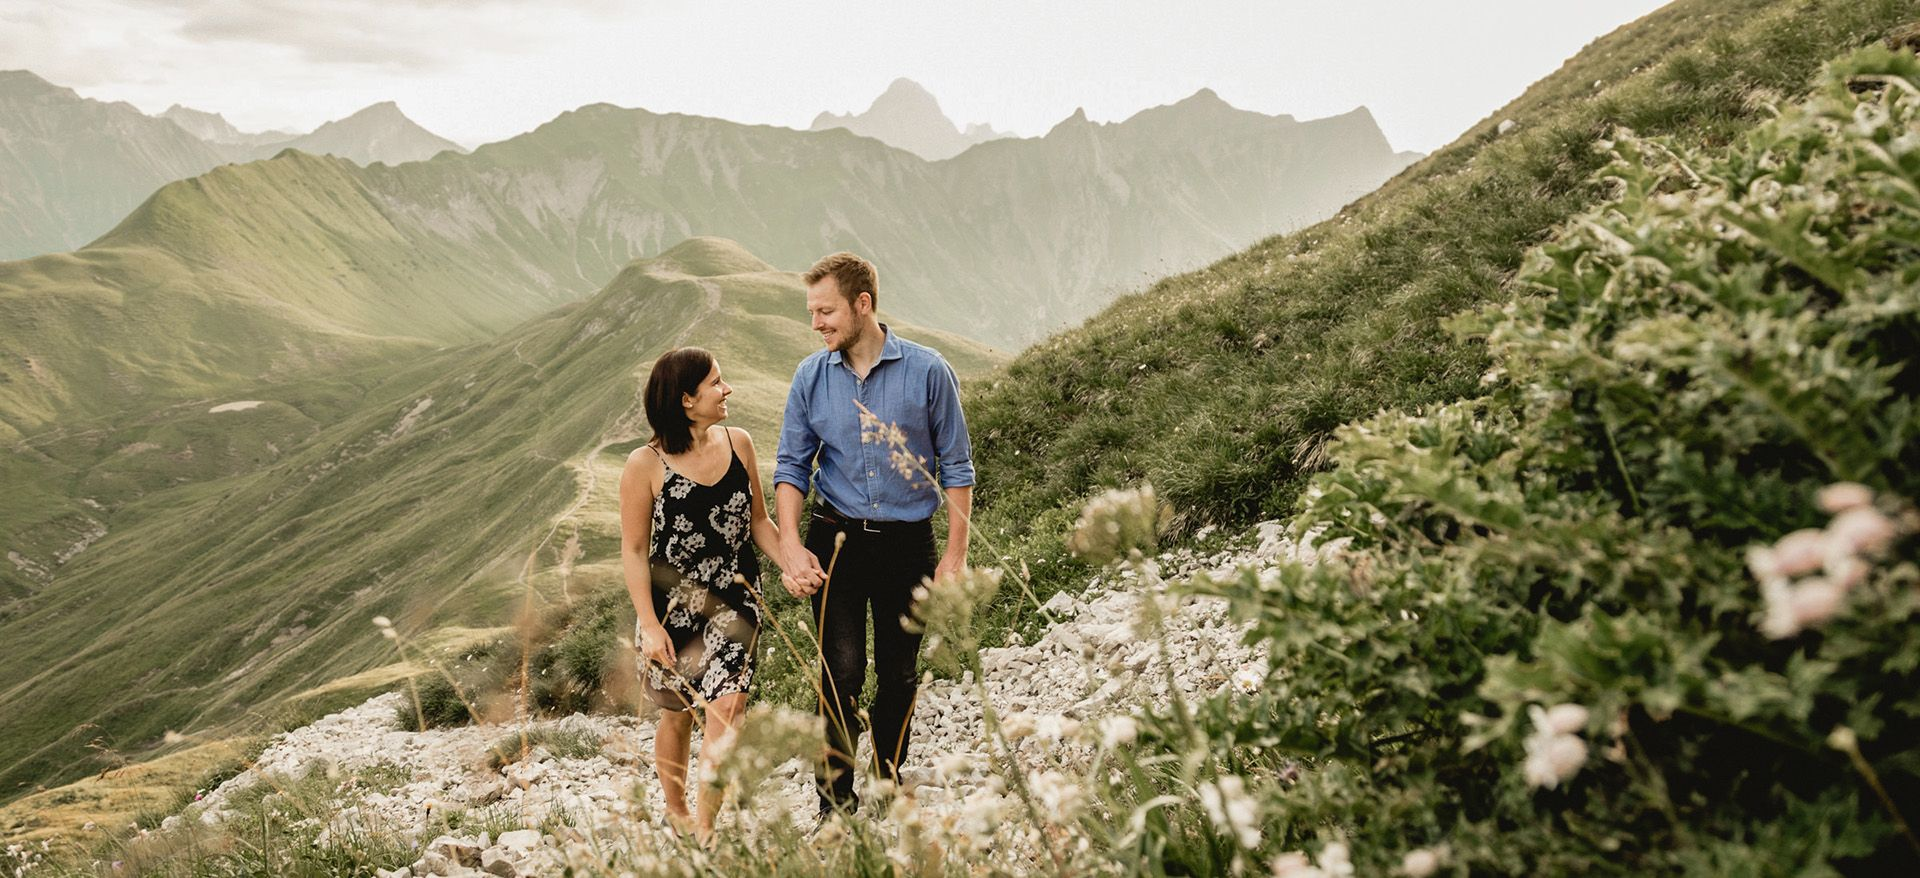 hiking elopement austria